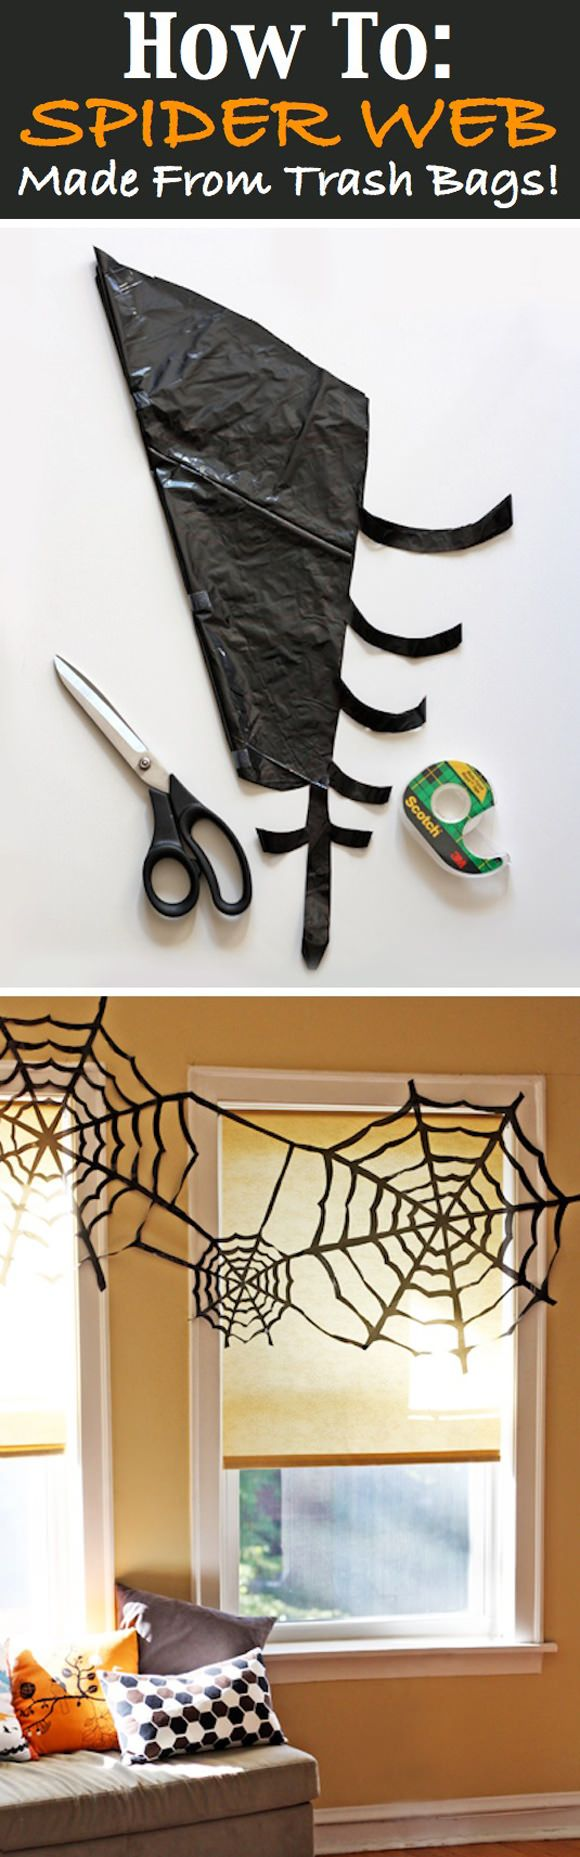 spiderwebs made from trashbags.